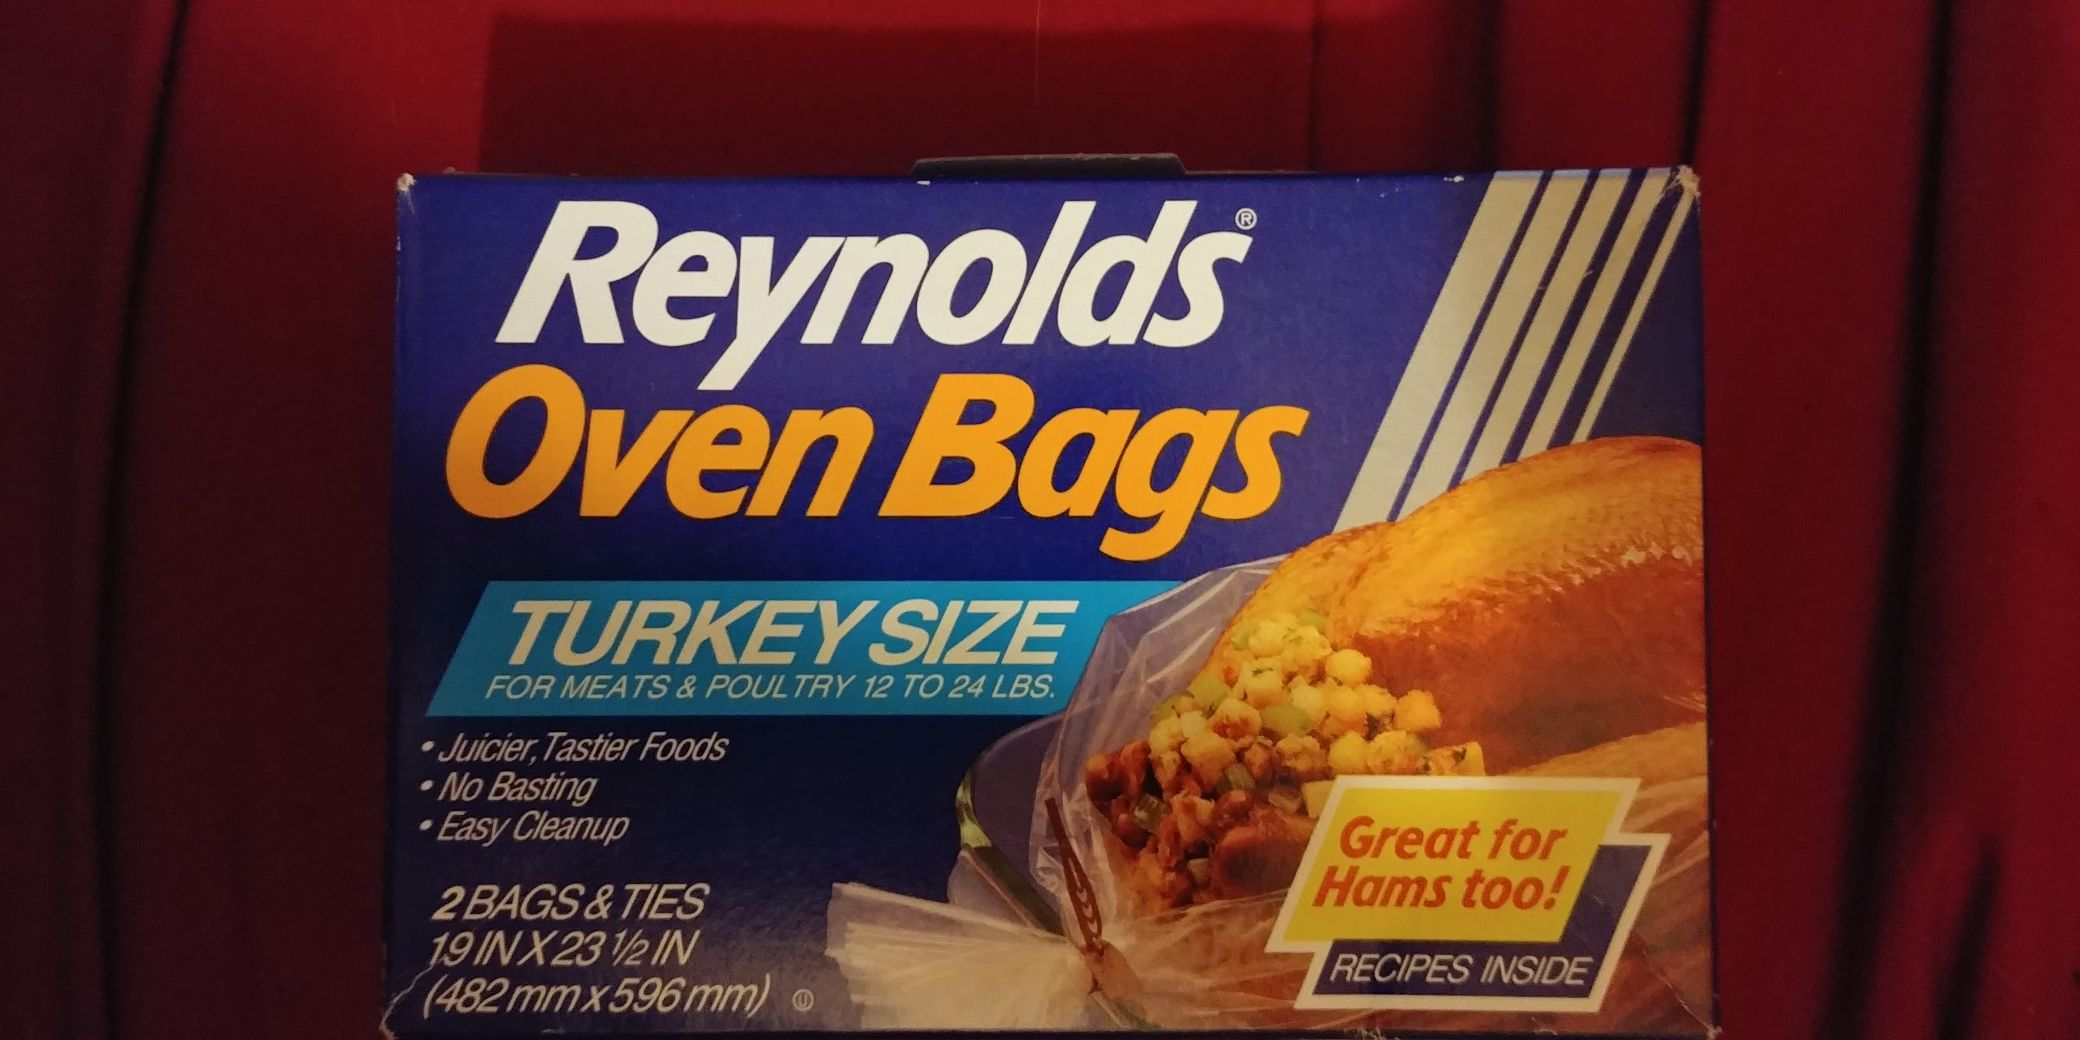 Reynolds Oven Bags (Turkey Size) Ornament - Reynolds front image (front cover)